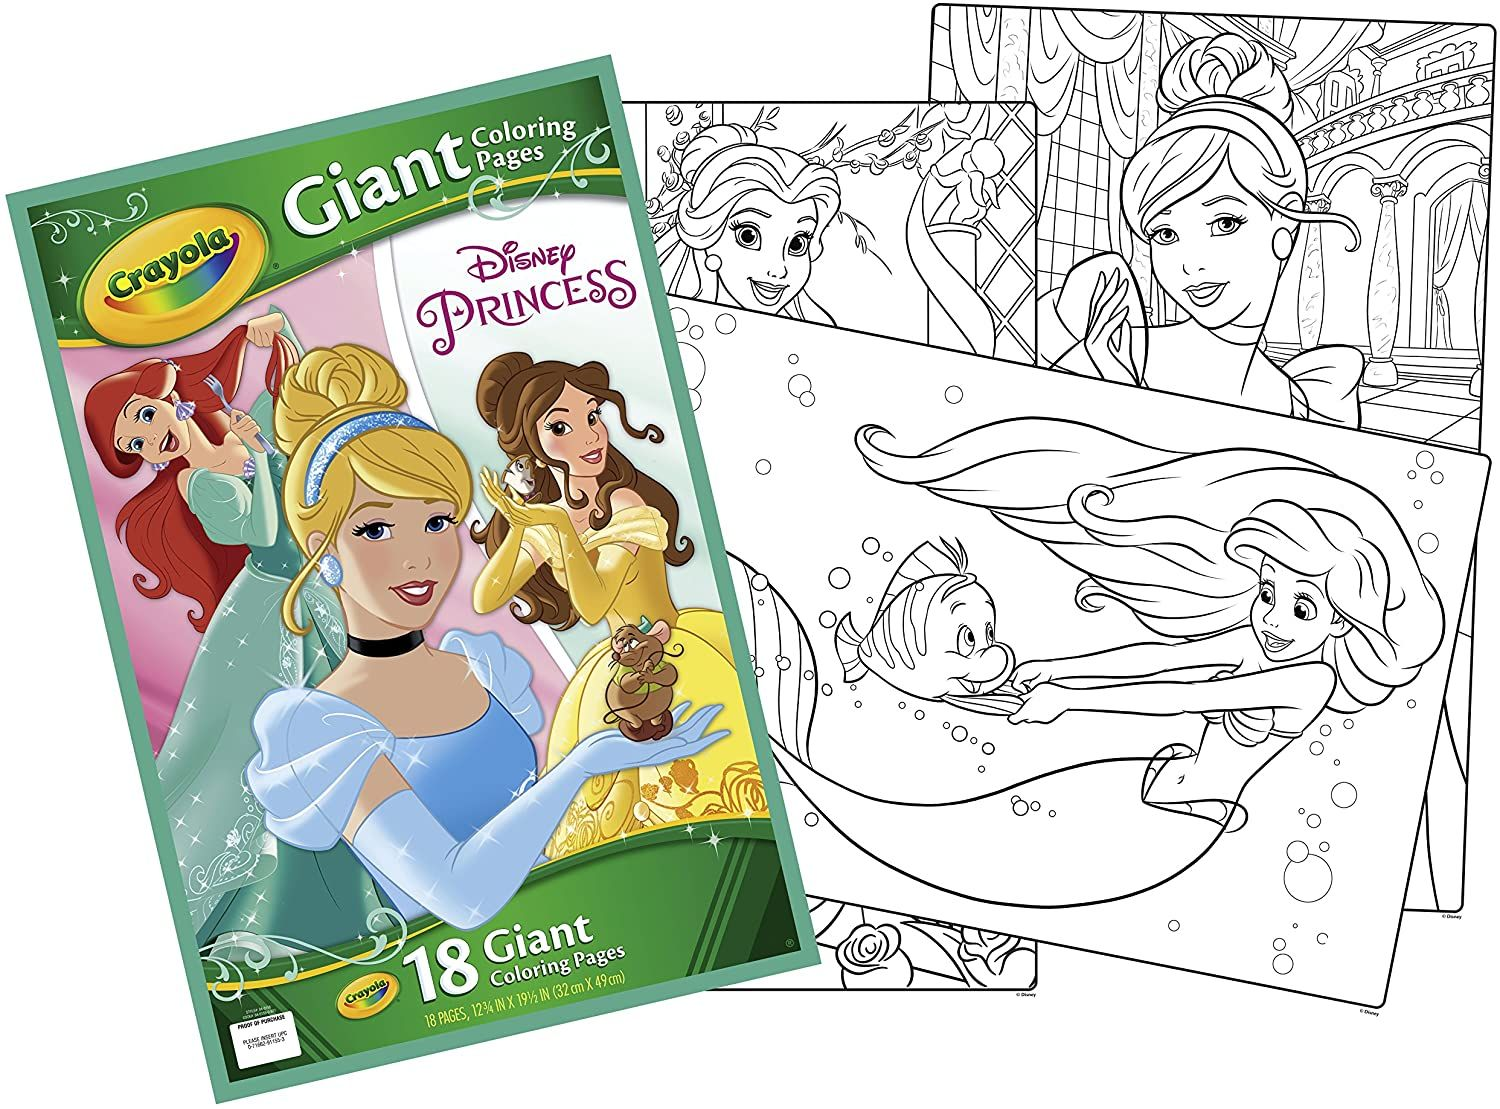 Awesome Crayola Giant Coloring Pages Disney Fairies Cinderella Coloring Pages Coloring Pages Disney Fairies [ 1109 x 1500 Pixel ]